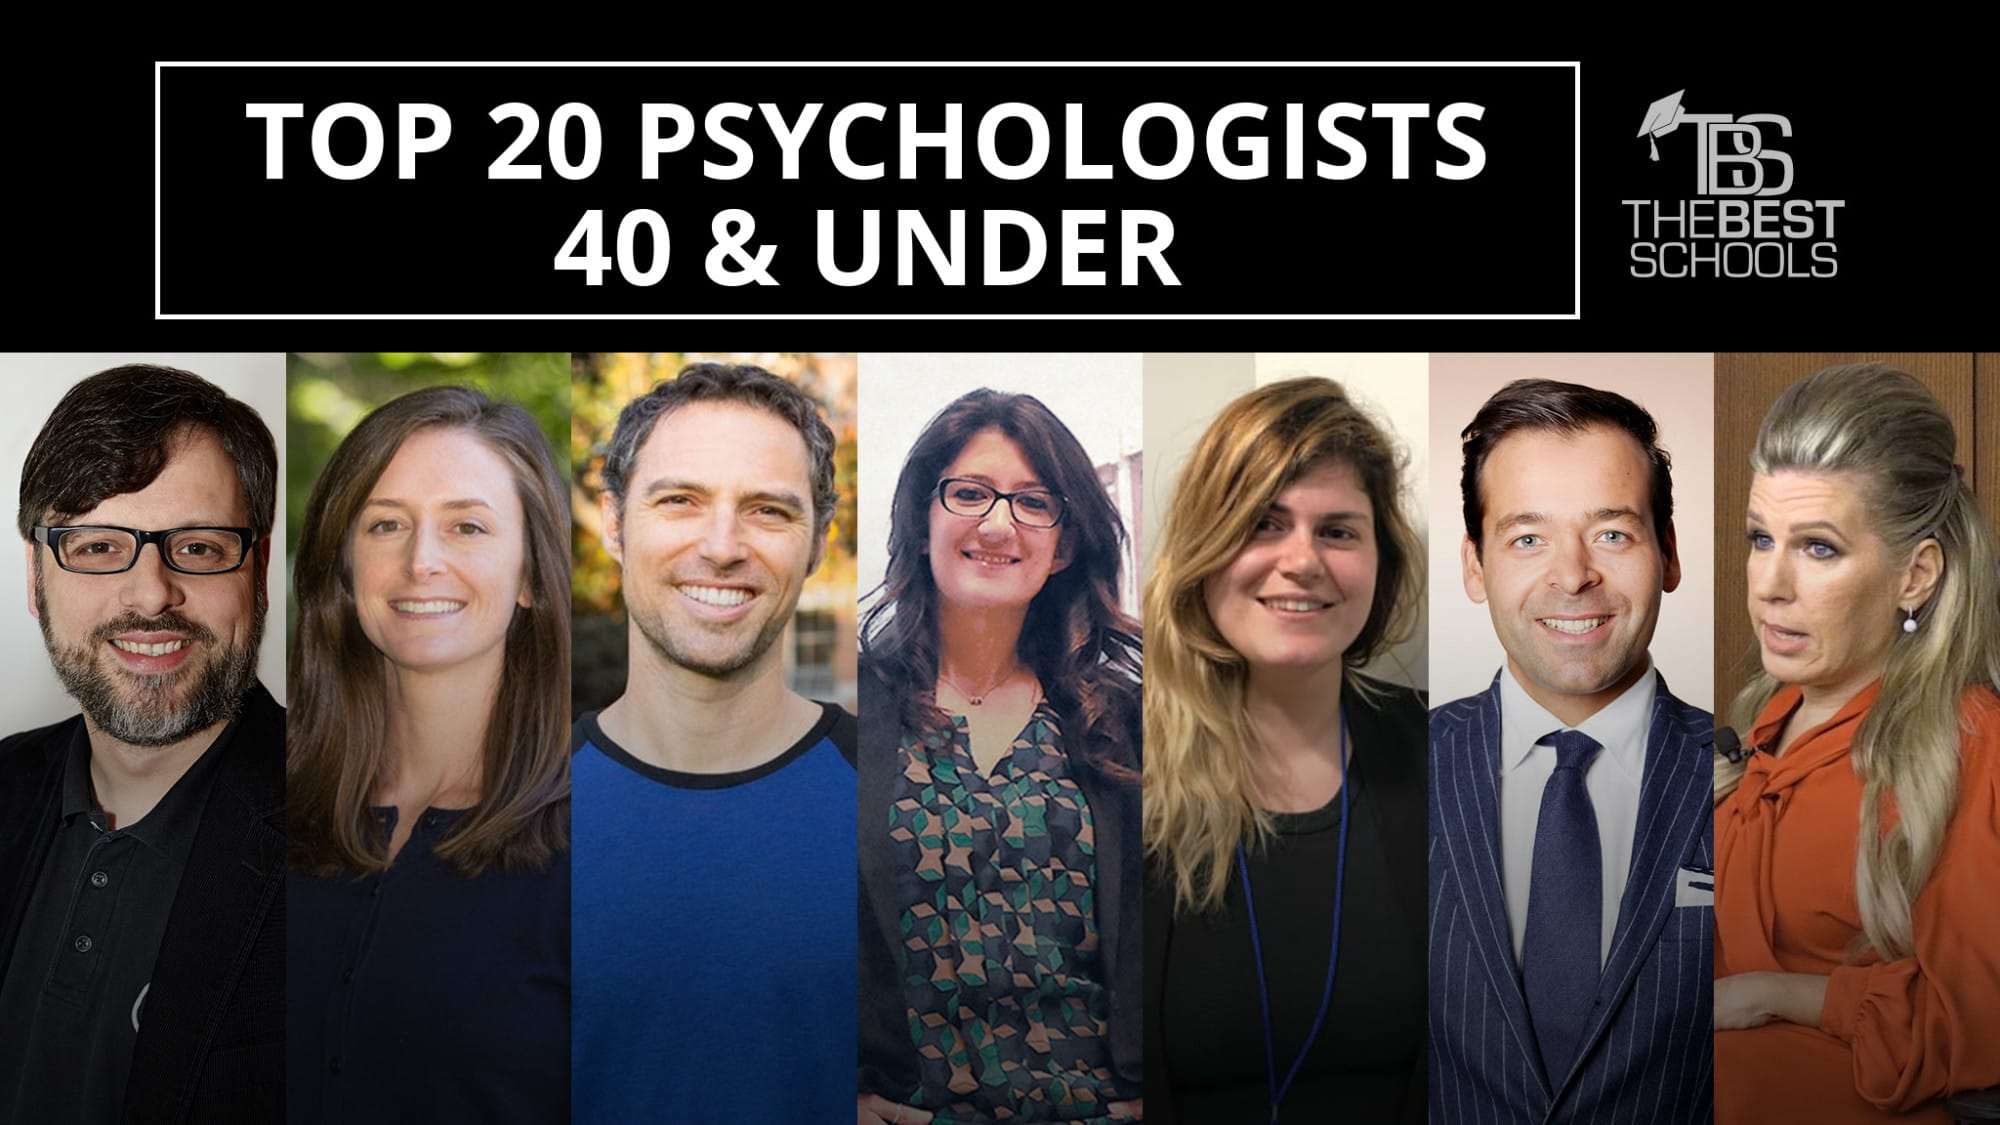 The Top 20 Psychologists 40 & Under | TheBestSchools org